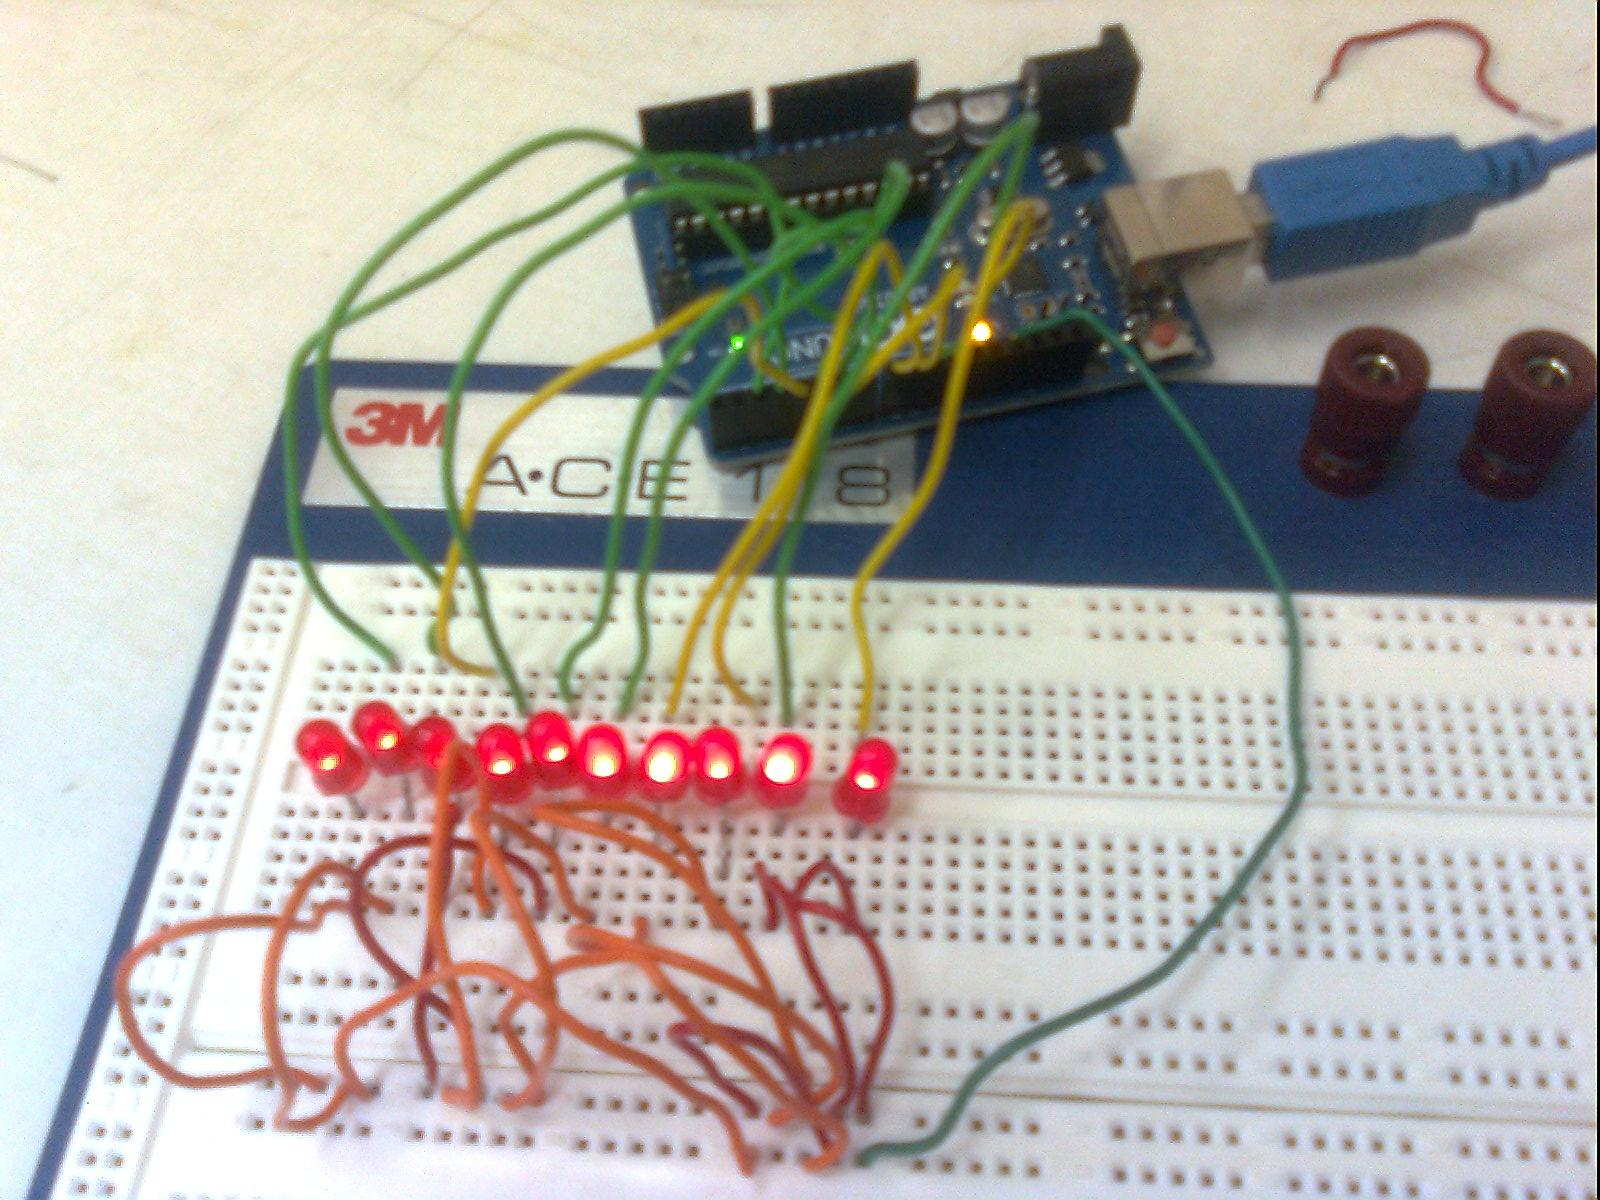 Making 1x10 LED Array with Random Patterns